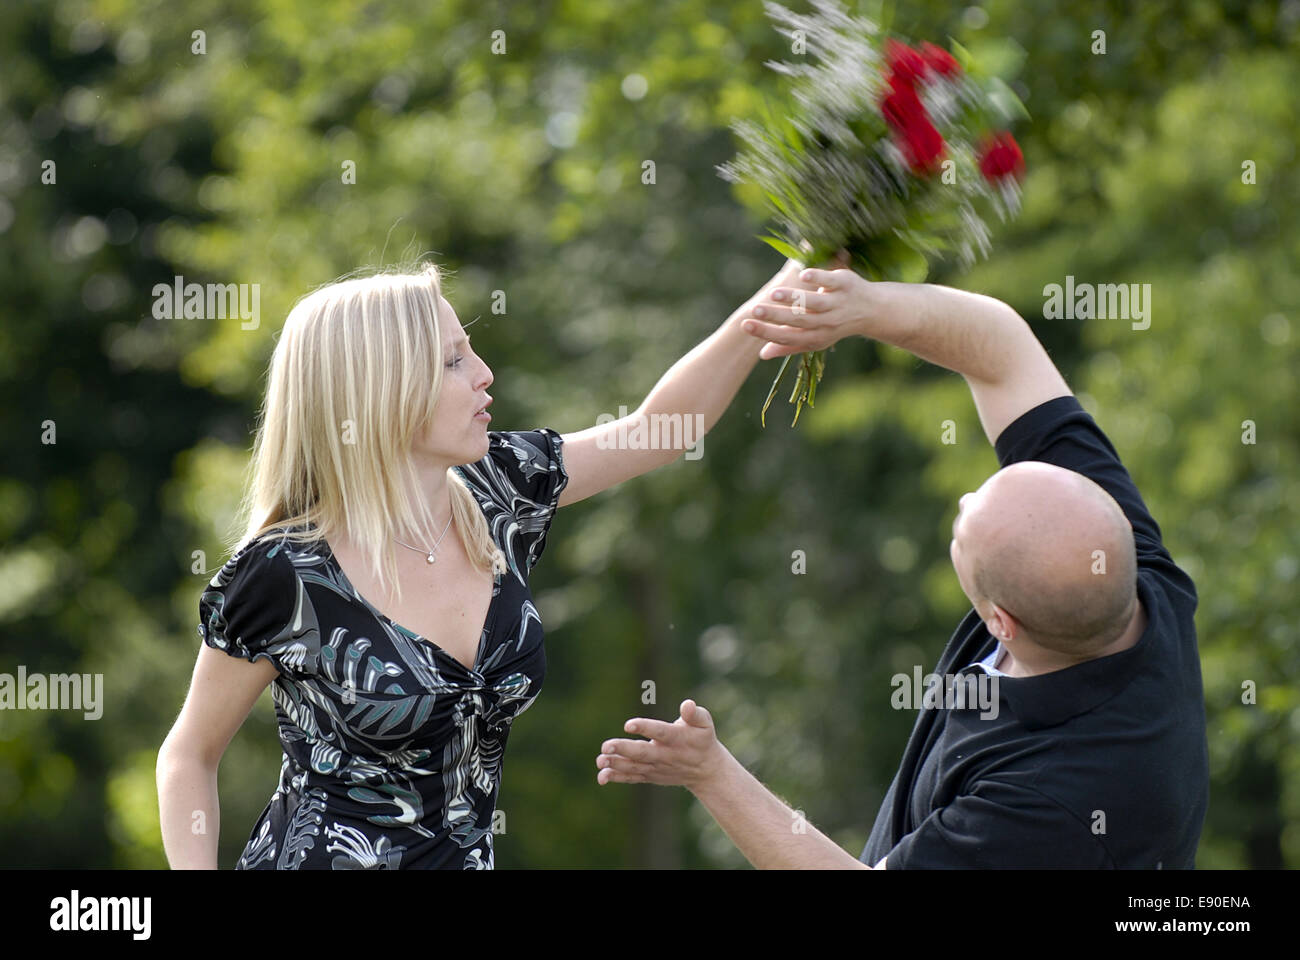 Couple at odds - Stock Image